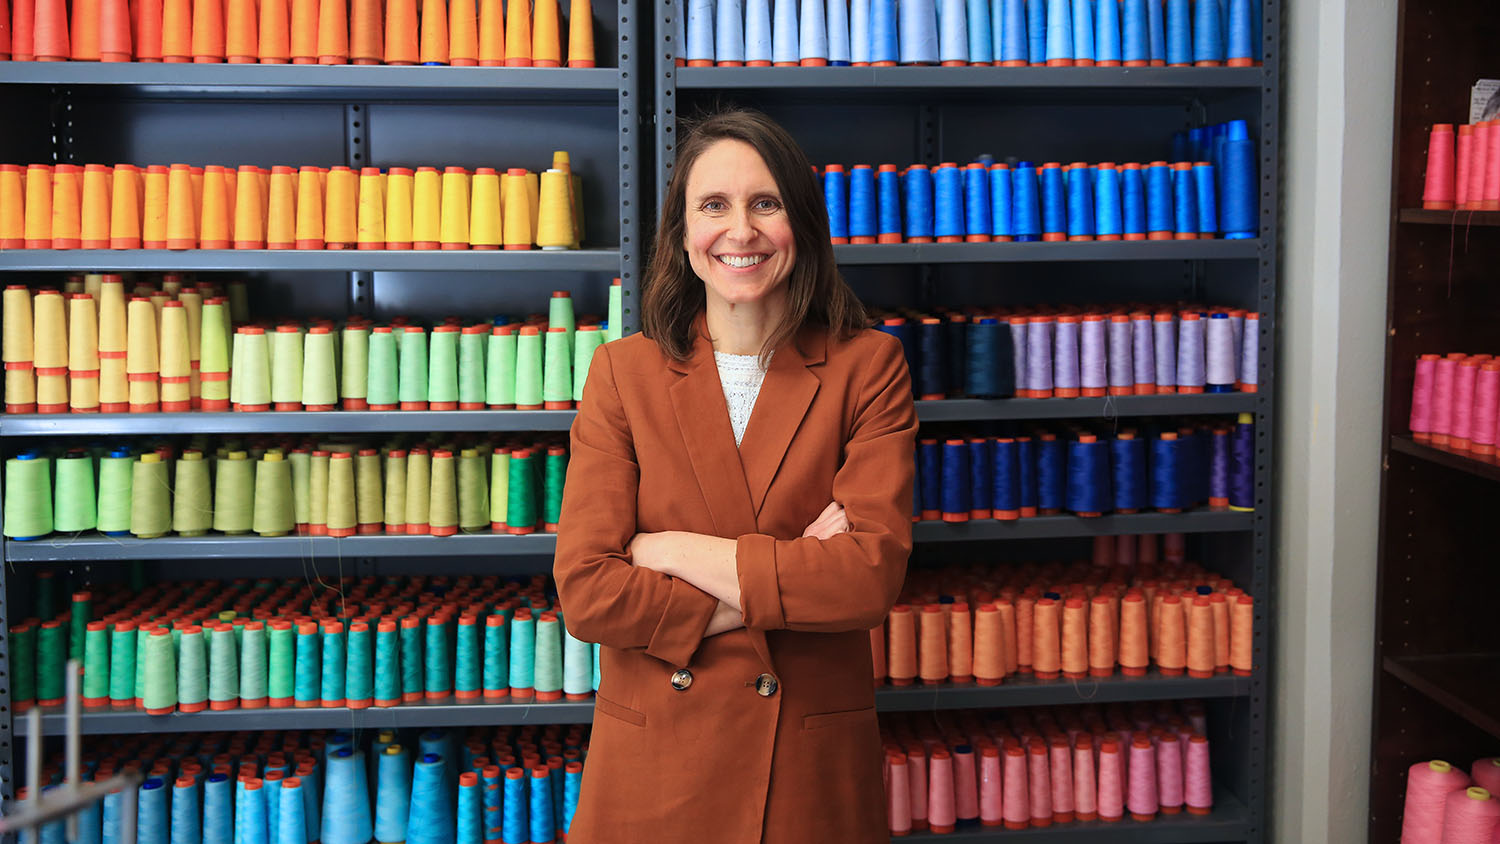 TATM professor Kate Nartker, smiling, stands with arms crossed in front of shelves organized into a rainbow of spools of colored thread